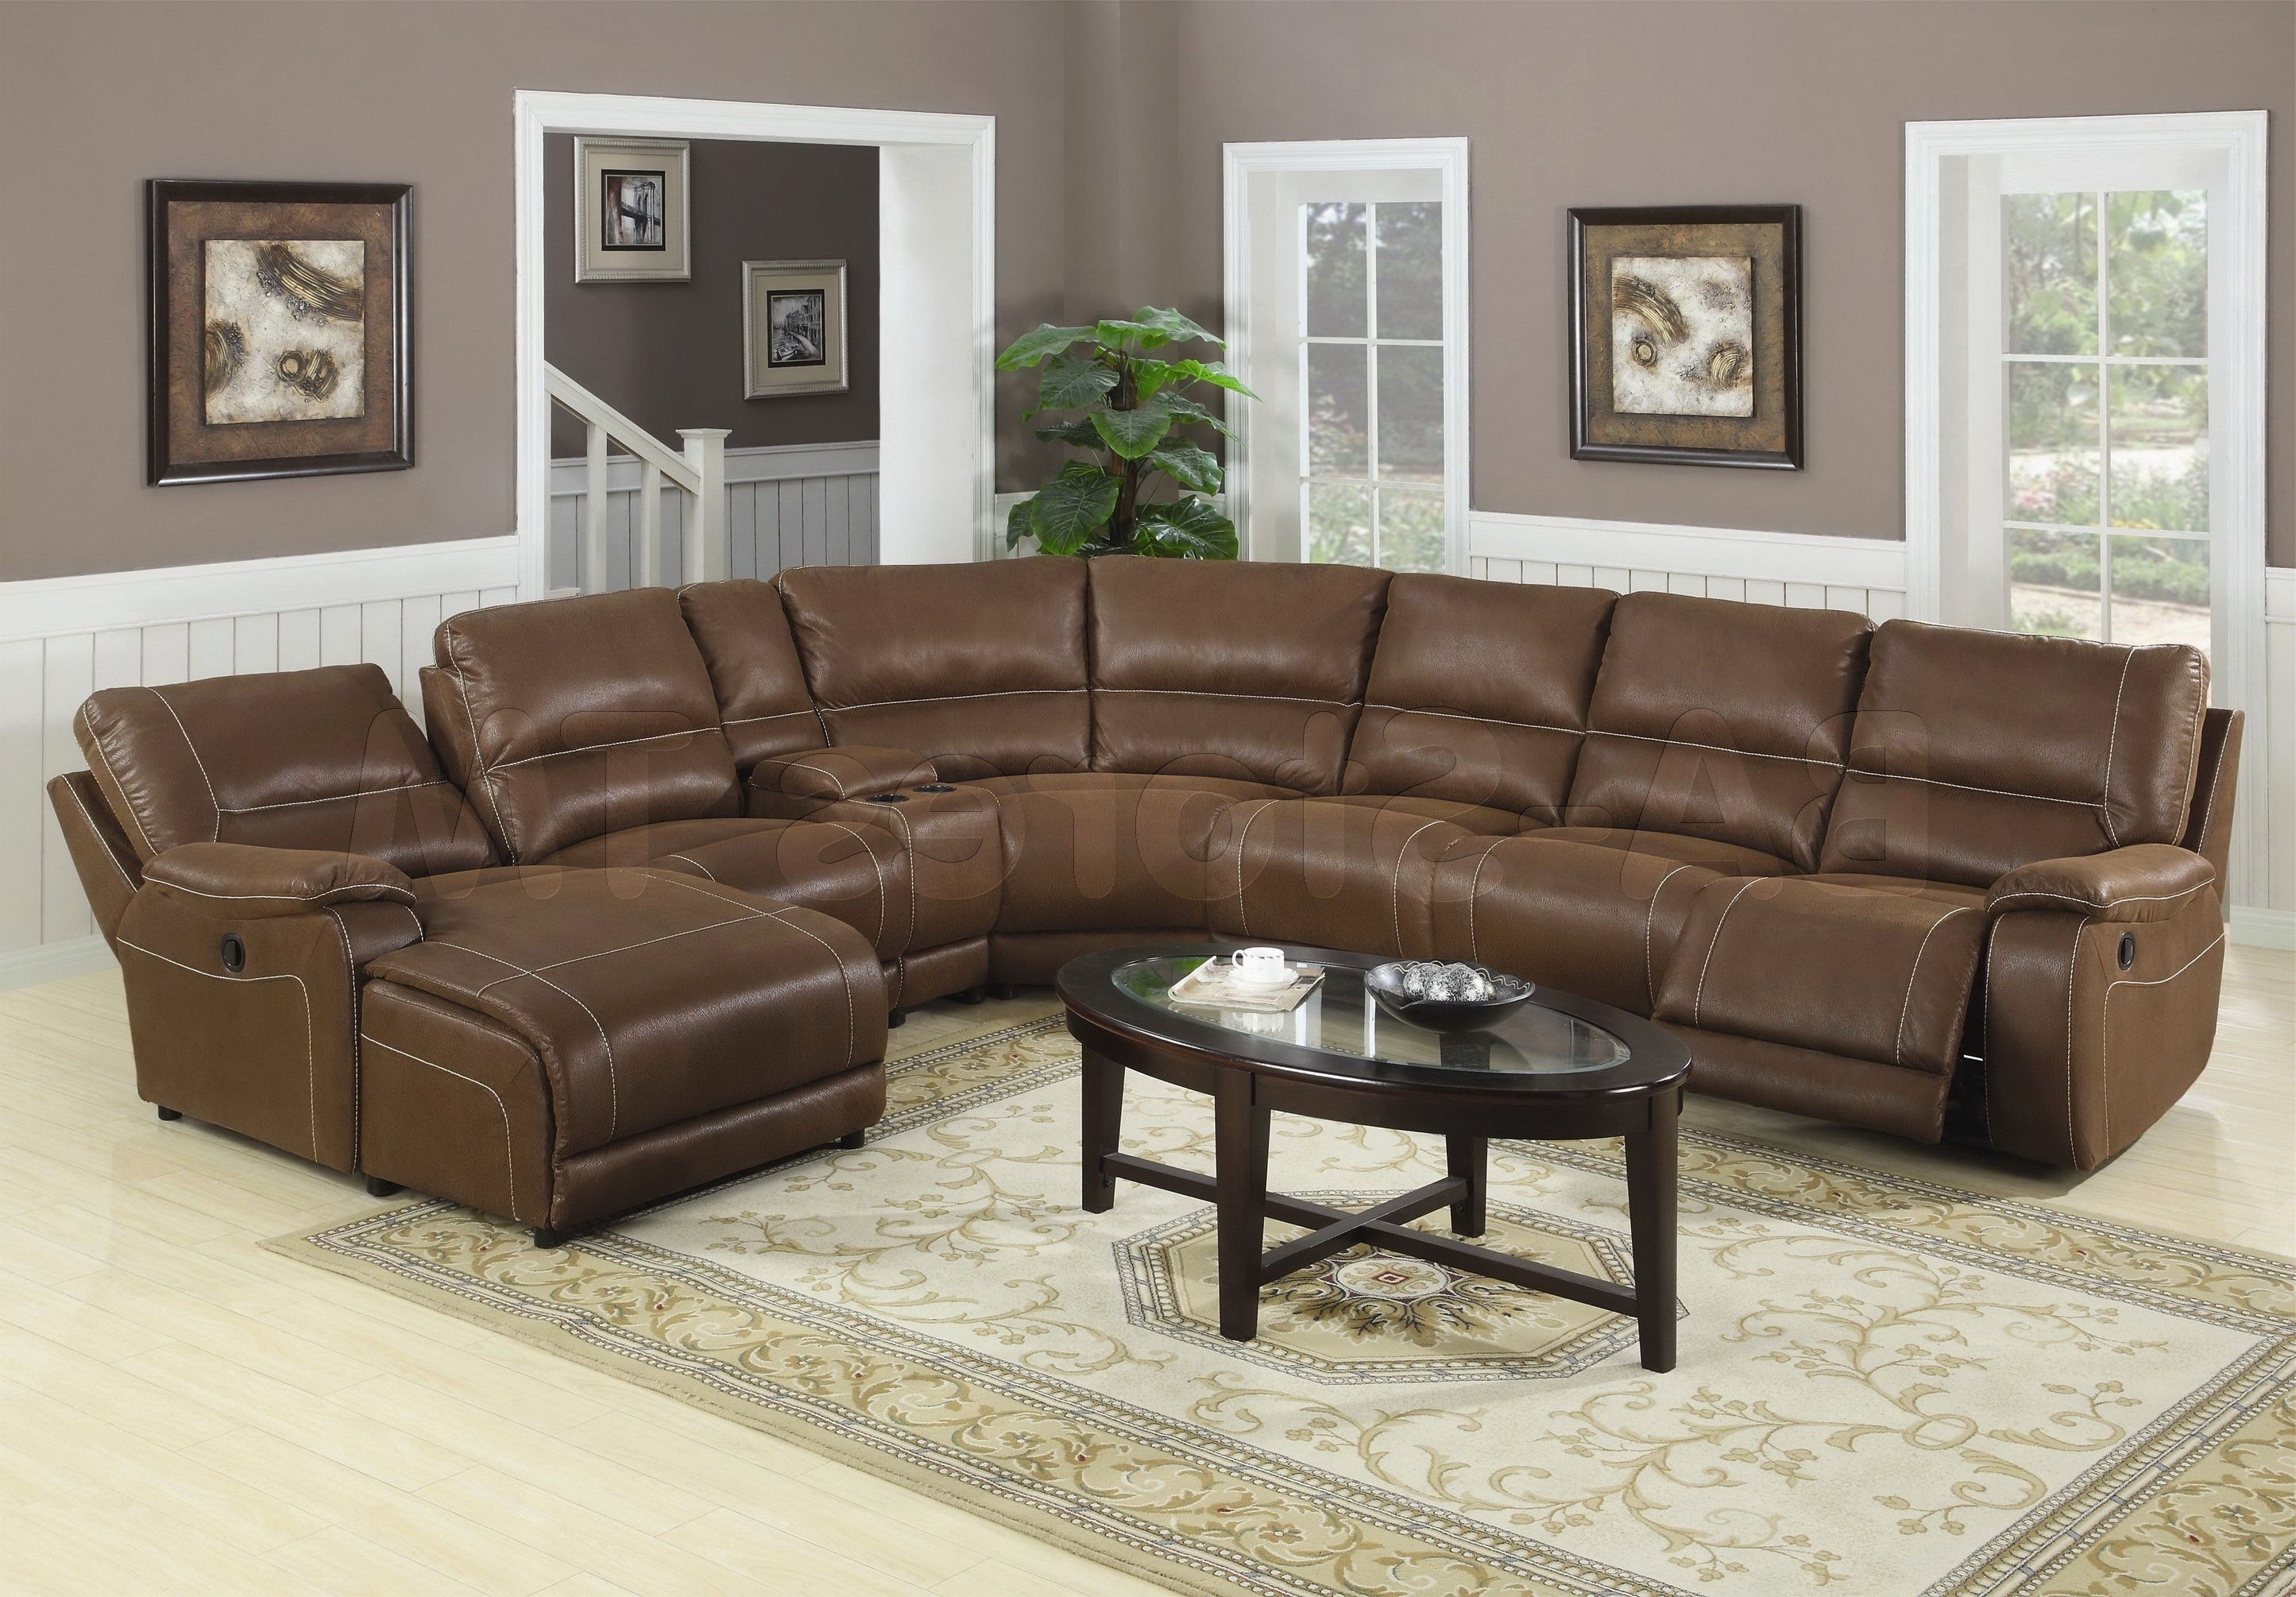 Microsuede Sectional Sofas Intended For Best And Newest Beautiful Microfiber Sectional Sofa 2018 – Couches And Sofas Ideas (View 7 of 15)